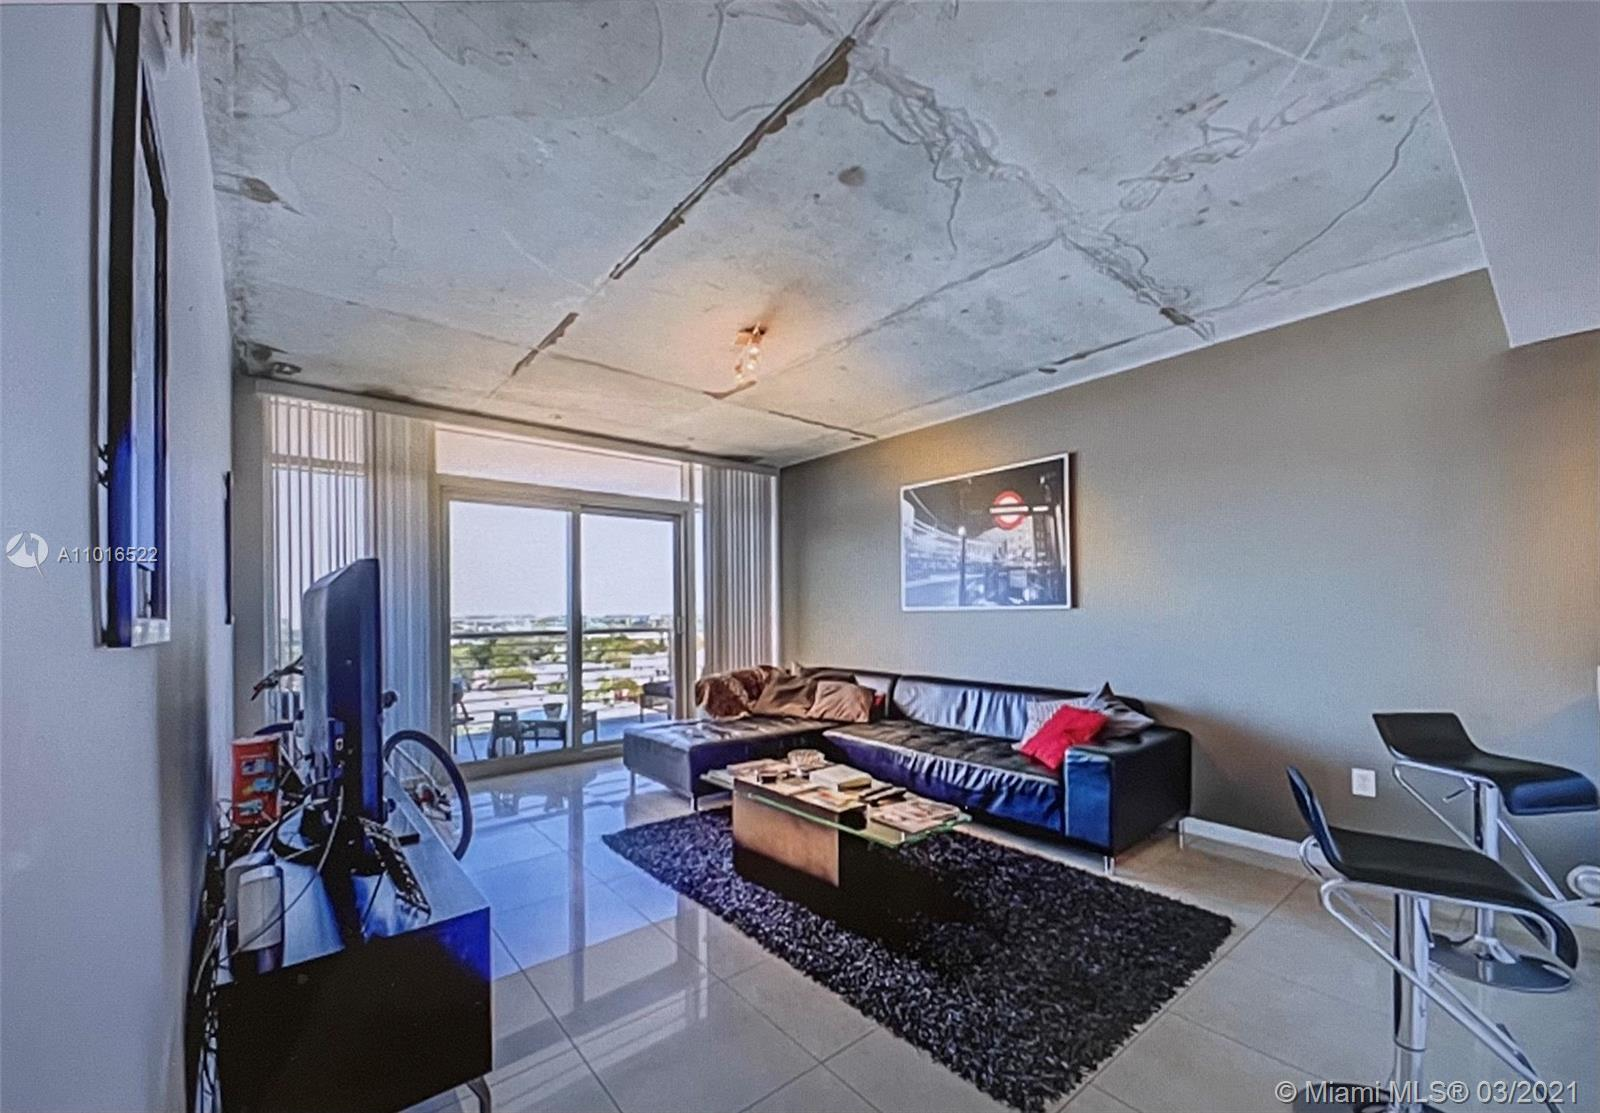 This is the opportunity to acquire beautiful, modern, and spacious condo. A full entreatment neighbo